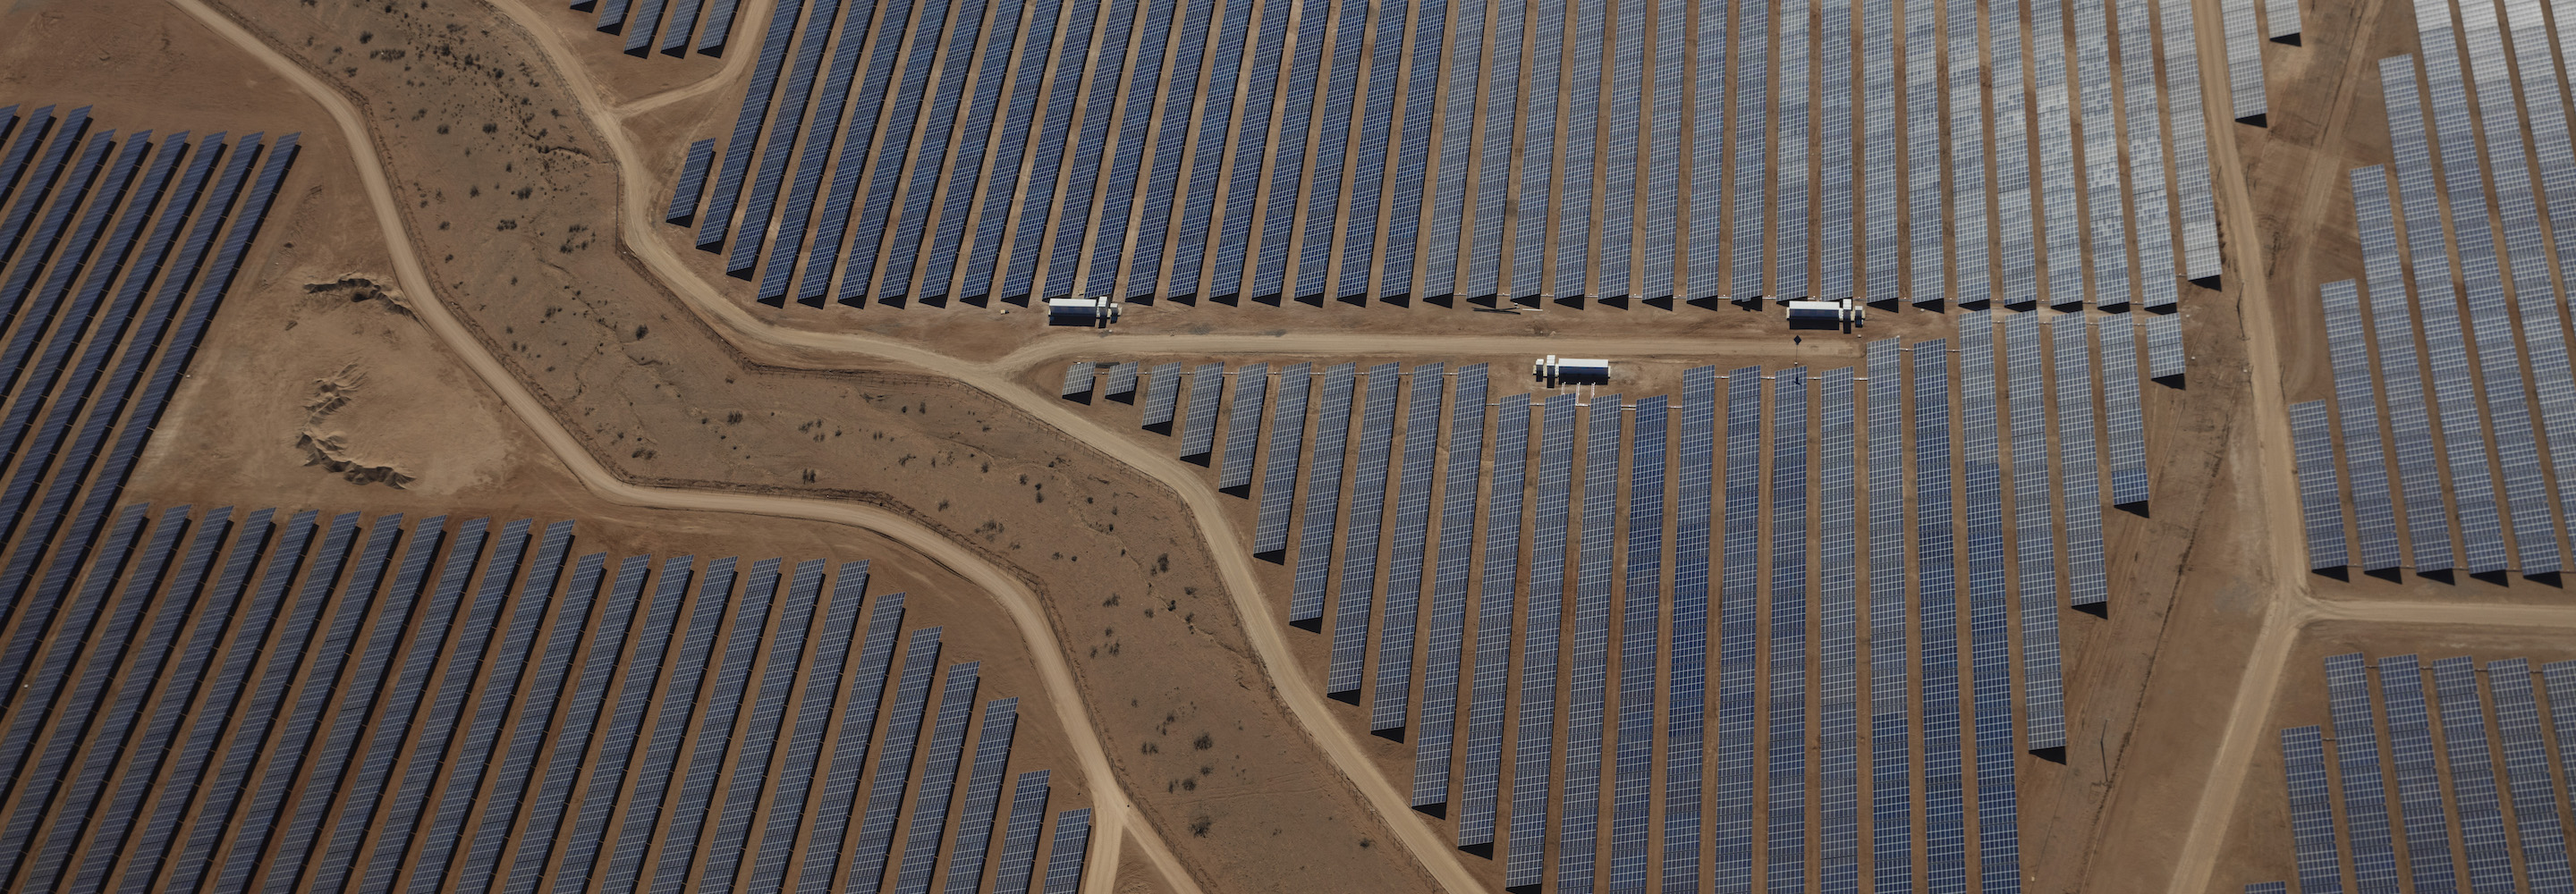 Google Has Bought Enough Renewable Electricity To Power All of Uruguay